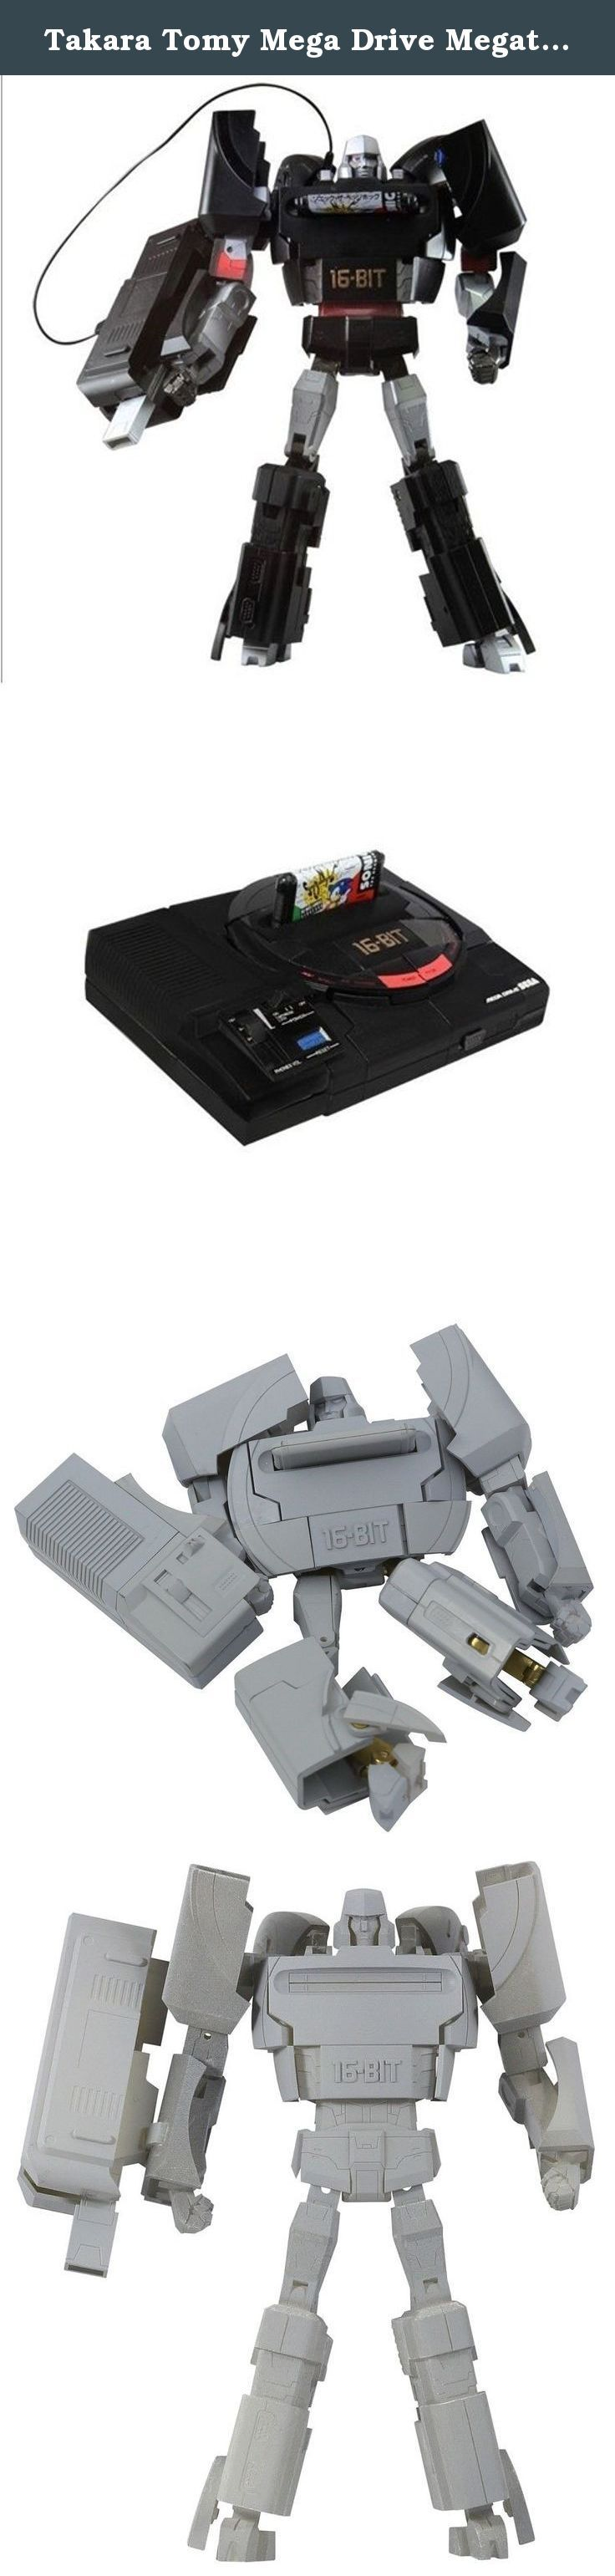 "Takara Tomy Mega Drive Megatron (SEGA Transformers) Action Figure. This is a special transformable figure by collaboration of SEGA and Takara Tomy. It stands approximately 7.5"" in robot form. SEGA Mega Drive was the one of the most popular video game hardware's in 1988. Now it's back in Megatron form! It's a must-have for SEGA & Transformers fans!."